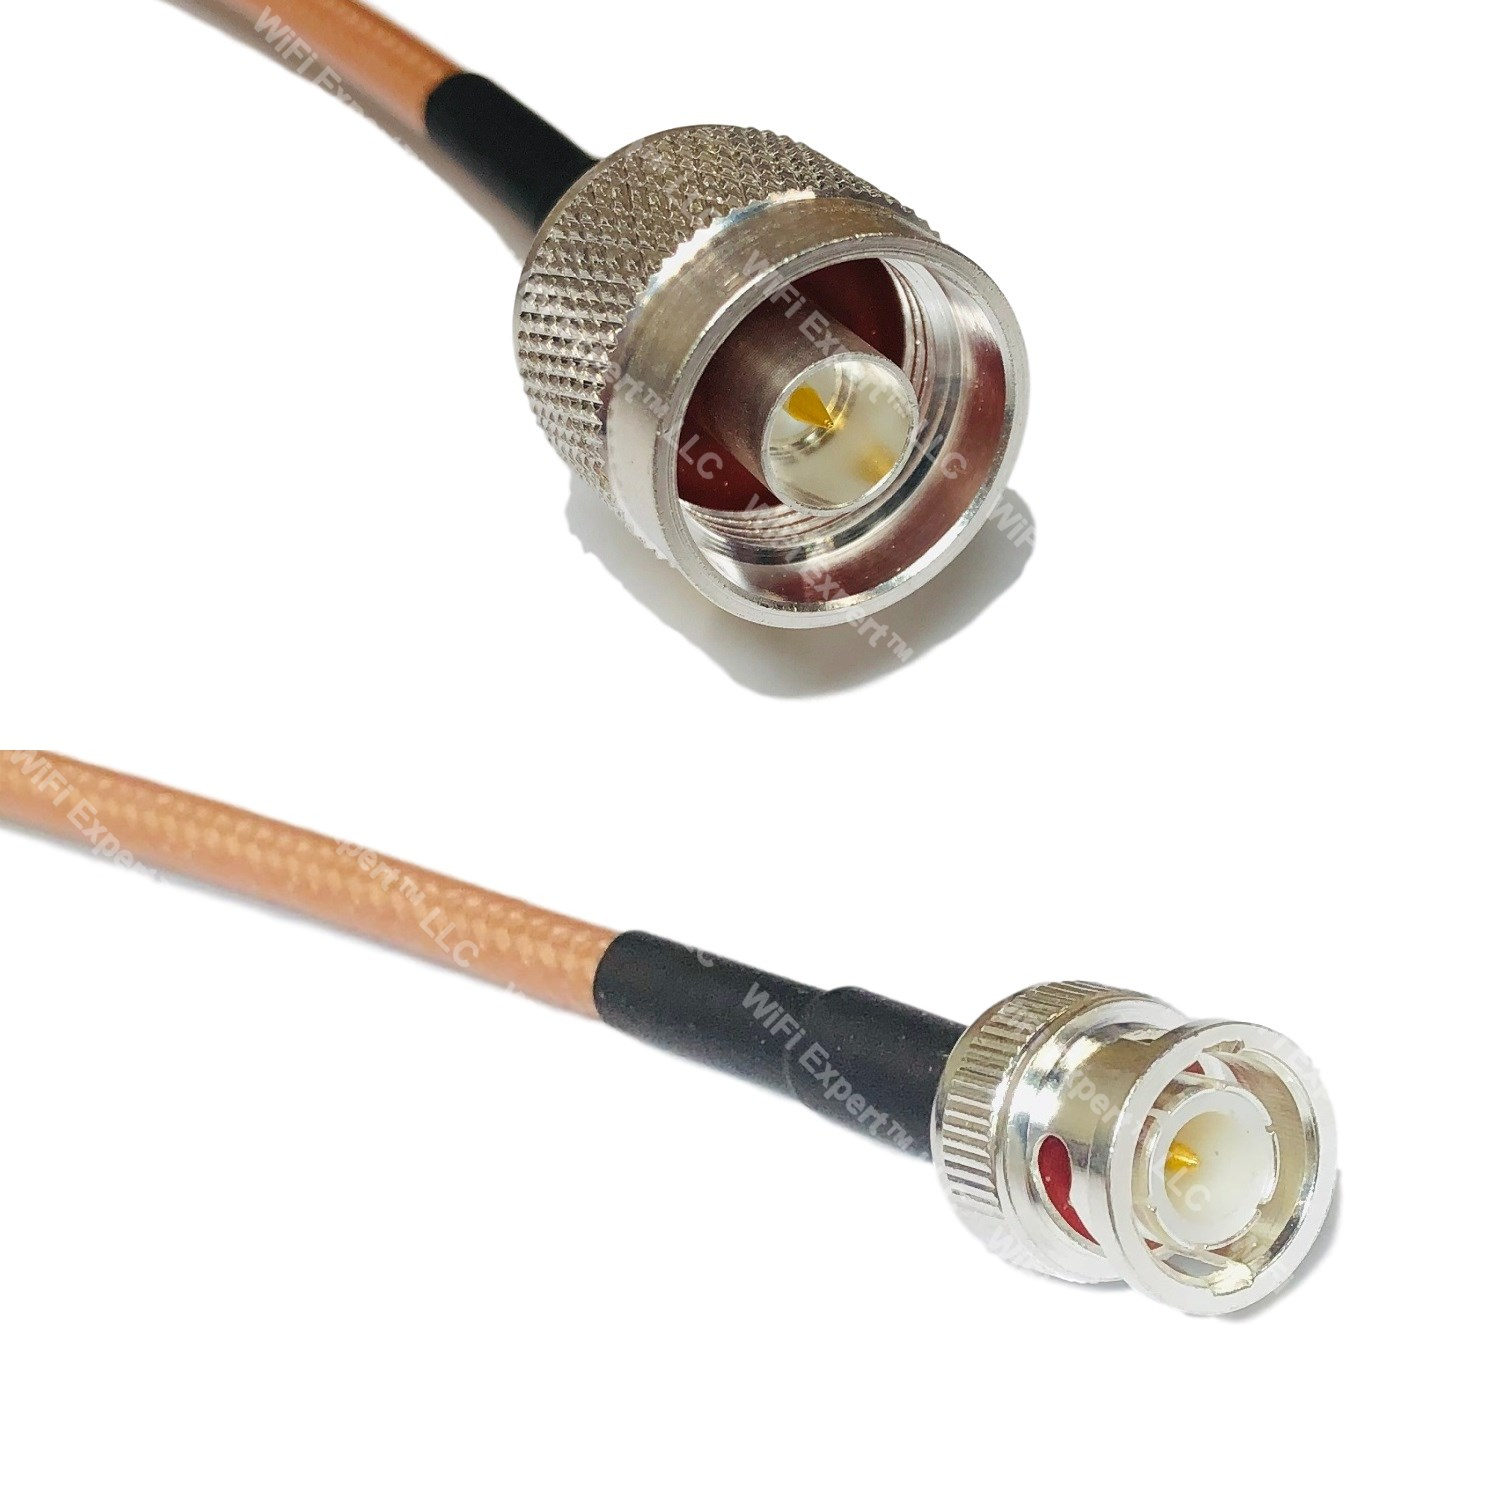 LMR200 Silver PL259 UHF Male to BNC MALE ANGLE Coax RF Cable USA Lot